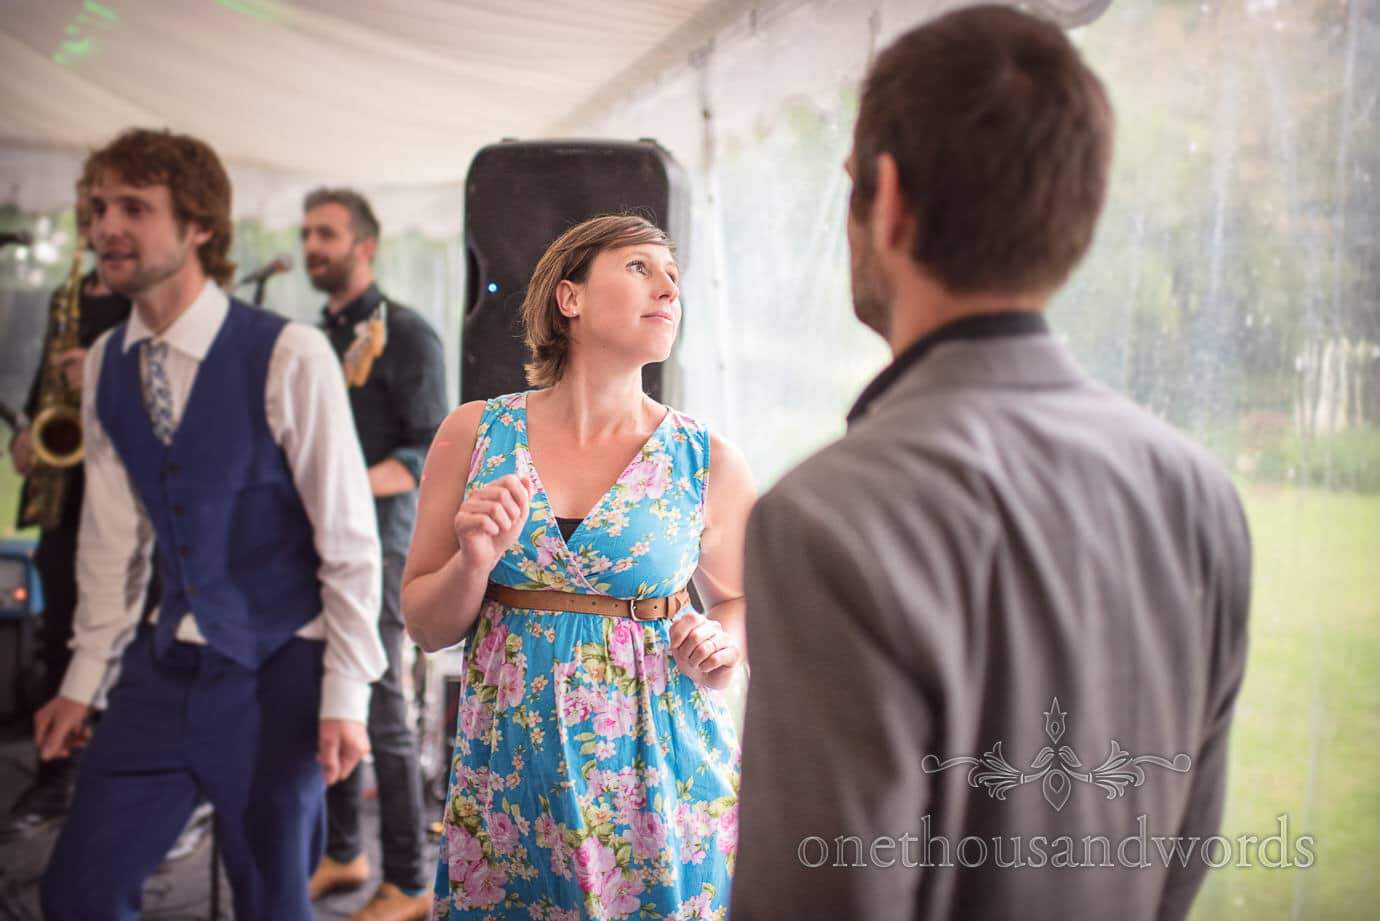 Wedding guest in light blue retro floral dress dancing at The Old Vicarage Wedding